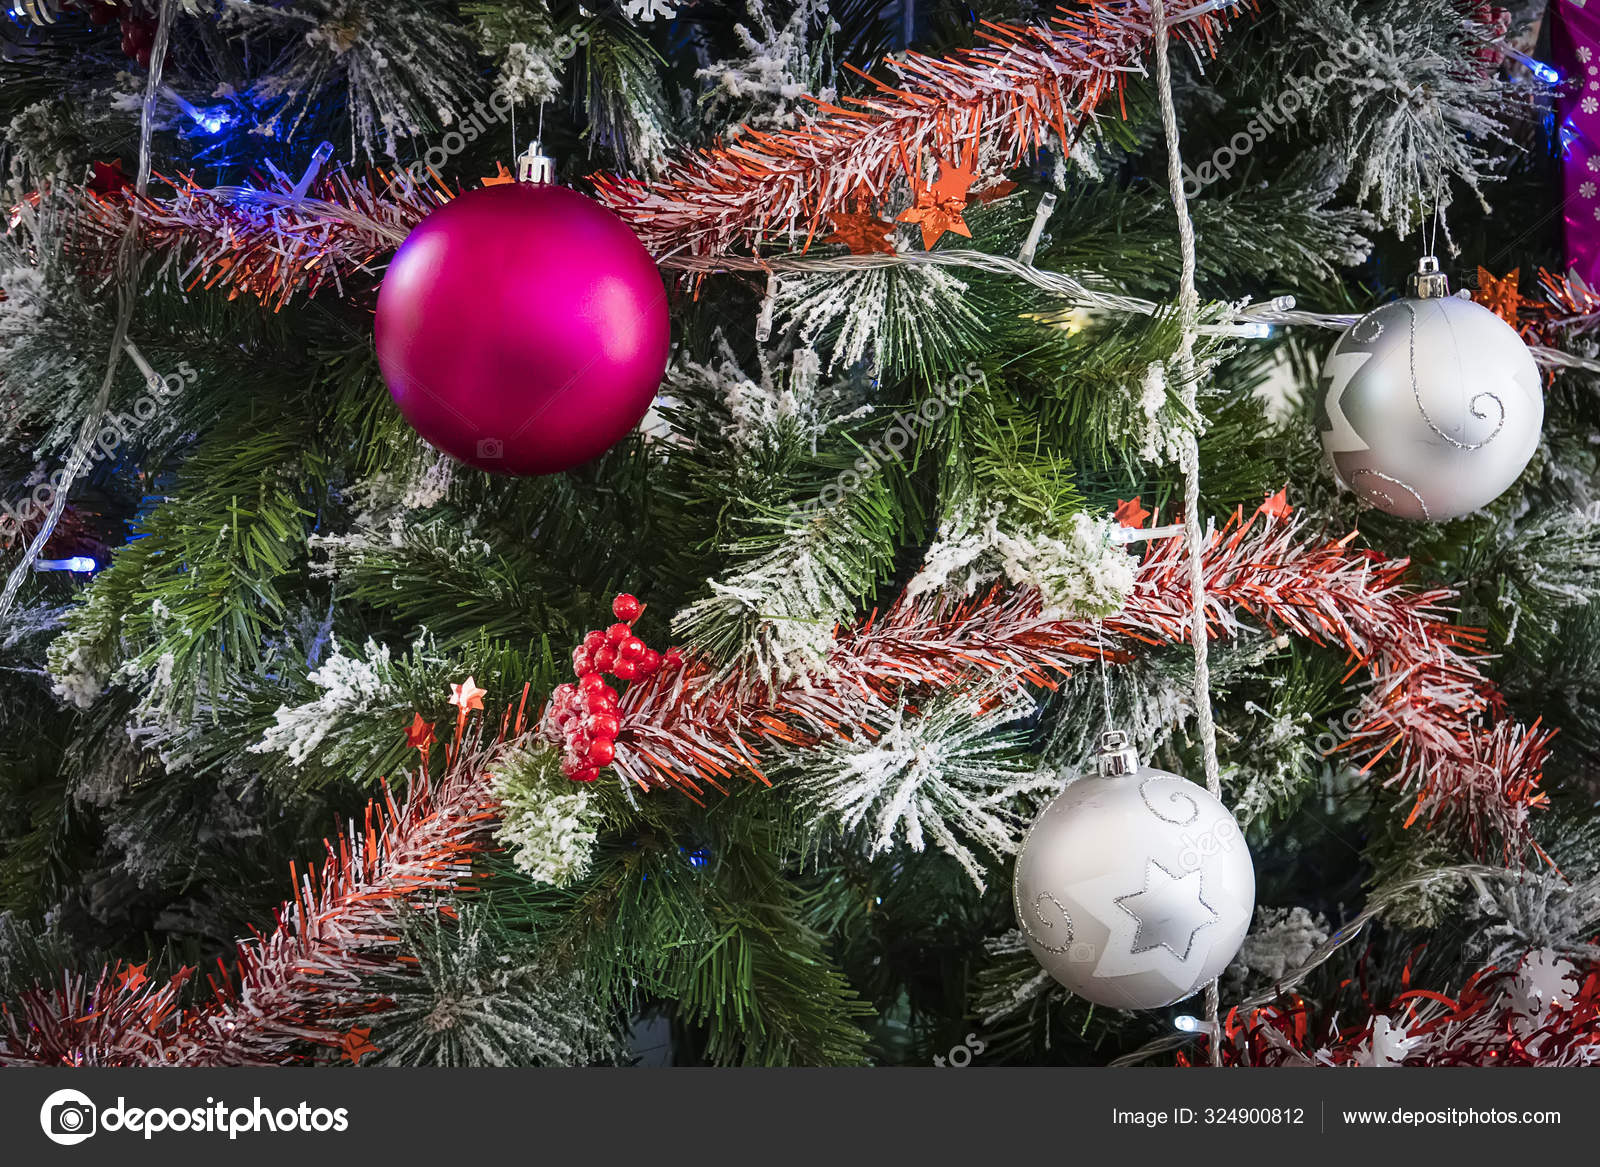 Closeup Of Green Christmas Tree And Pink Ball Decorations Colorful Balls And Garlands On A Fir Branch Stock Photo C Diy13 Ya Ru 324900812